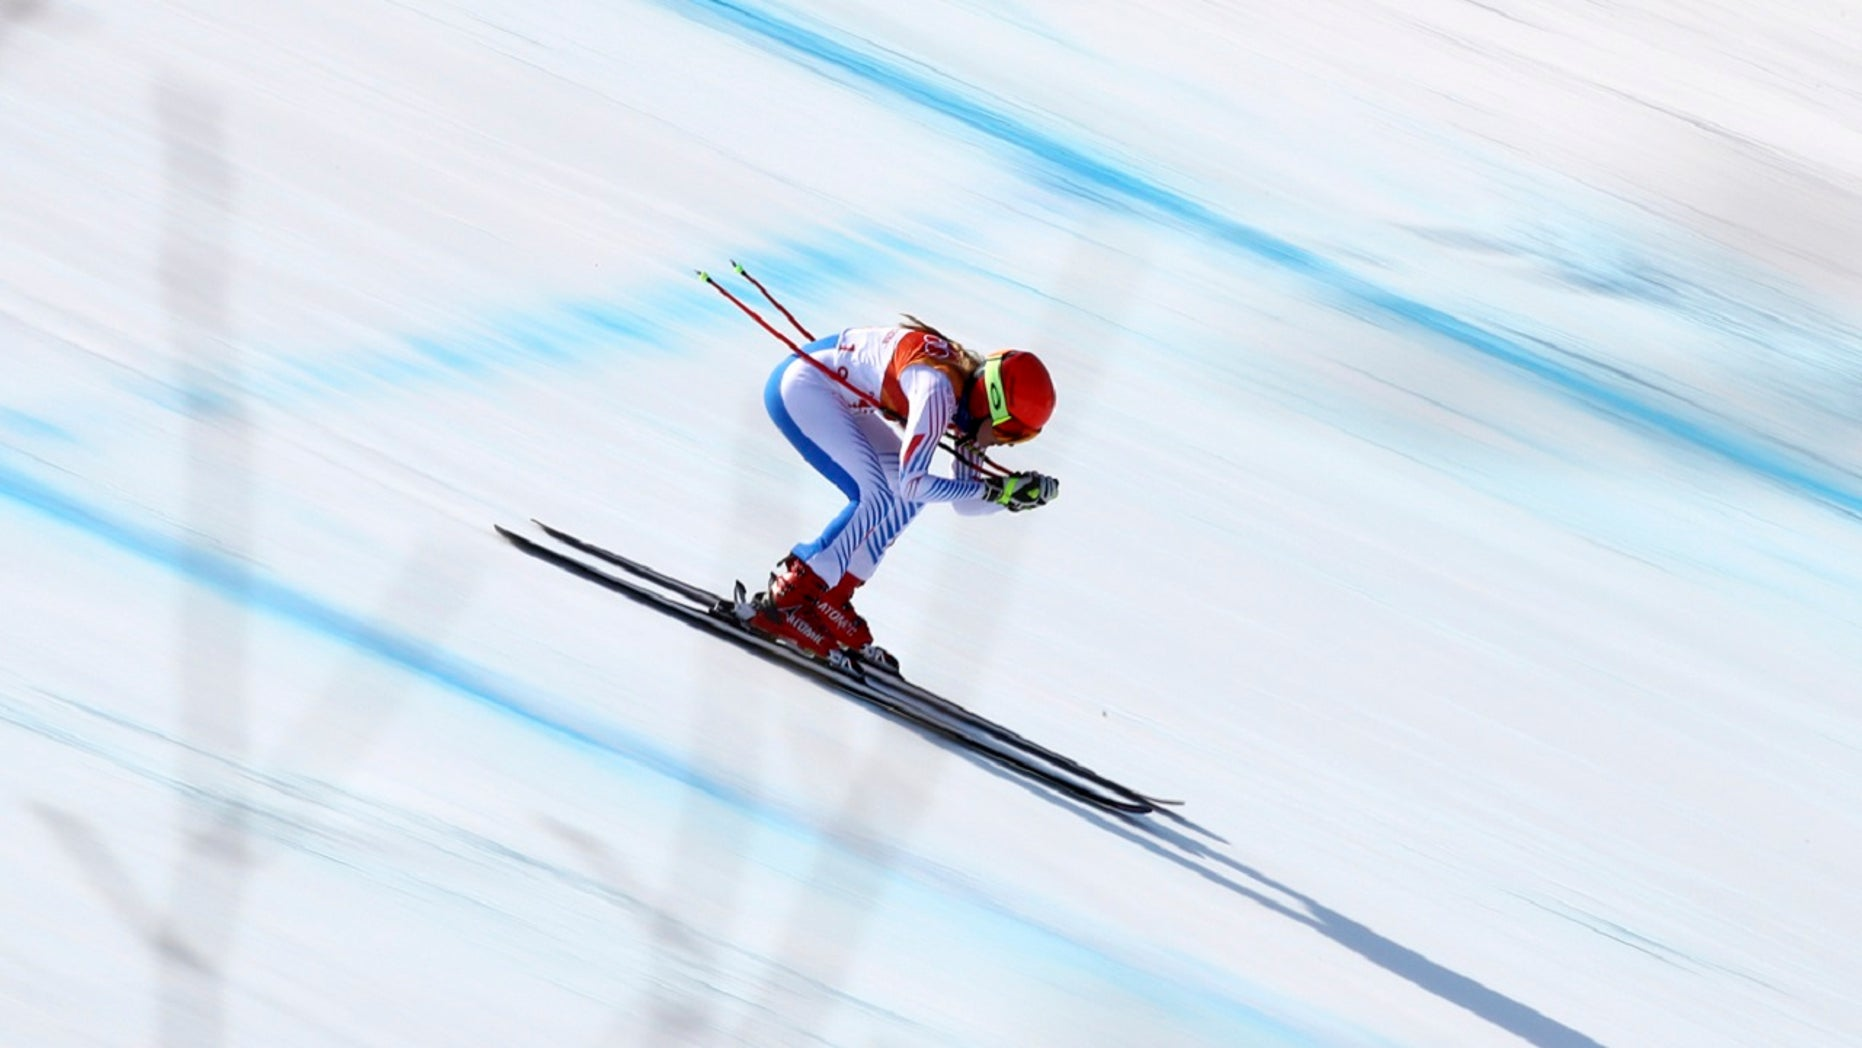 United States' Mikaela Shiffrin competes in the women's combined downhill at the 2018 Winter Olympics in Jeongseon, South Korea, Thursday, Feb. 22, 2018.